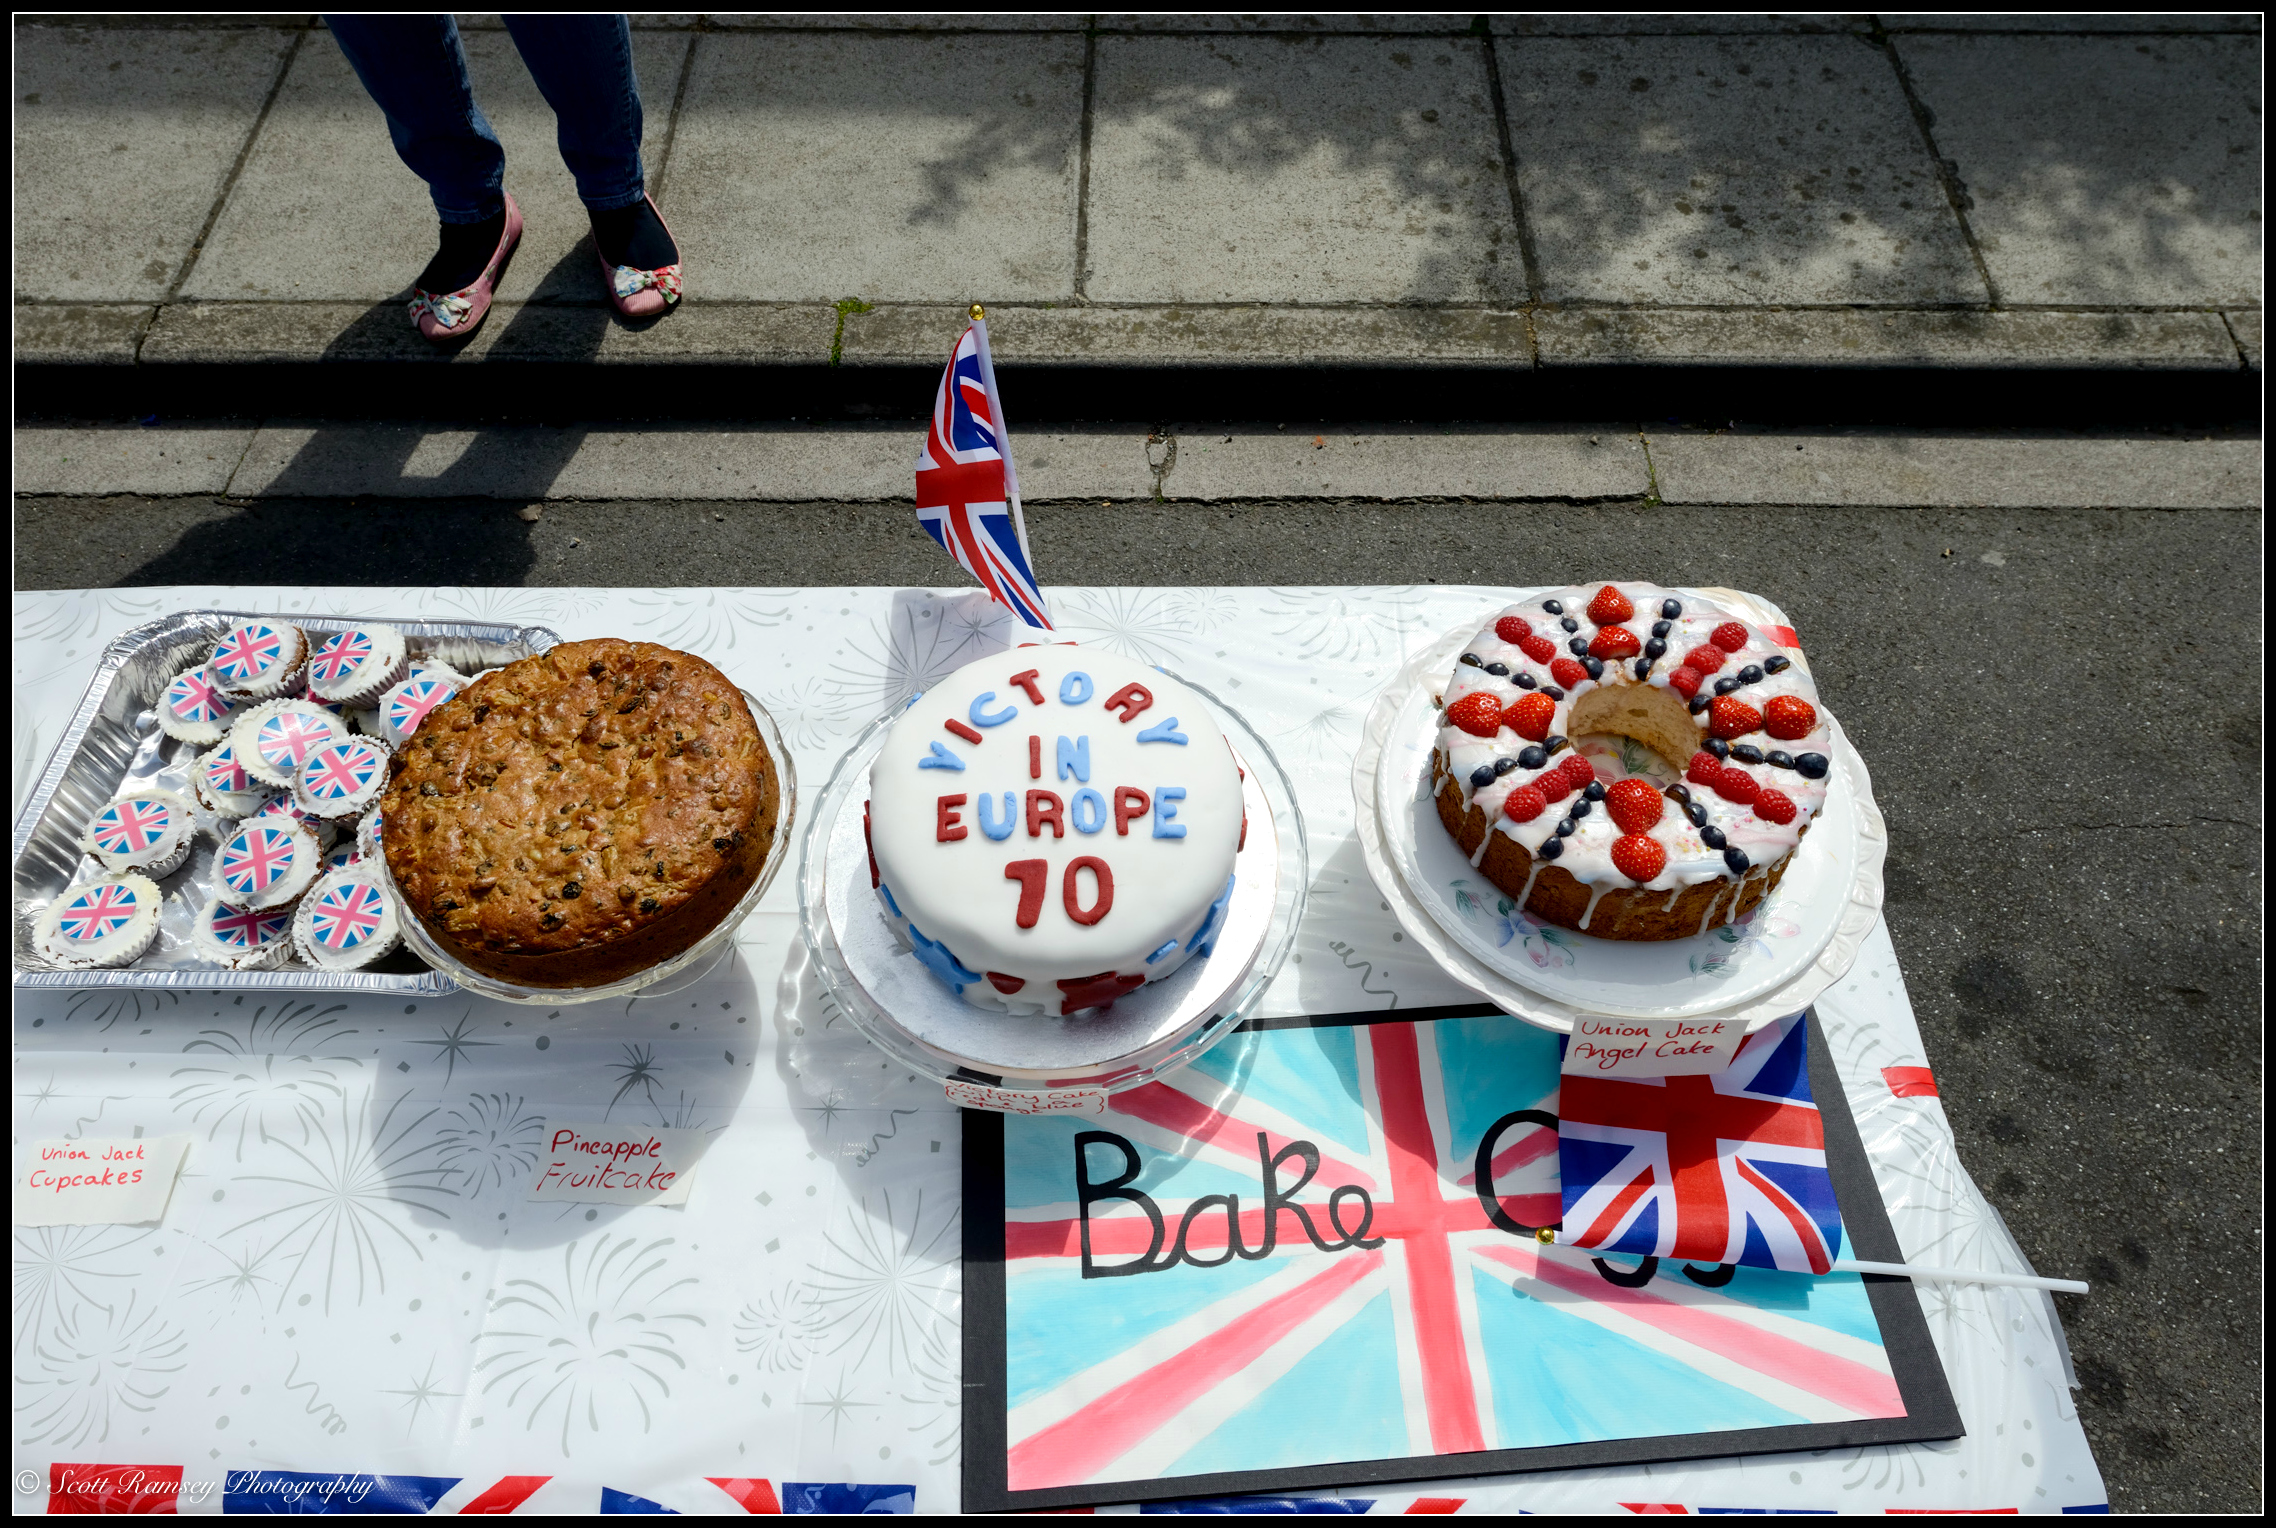 VE Day inspired cakes made by residents of the street sit on a table waiting to be judged in baking competition during the VE Day street party in Southsea, Portsmouth. © Scott Ramsey Photography.